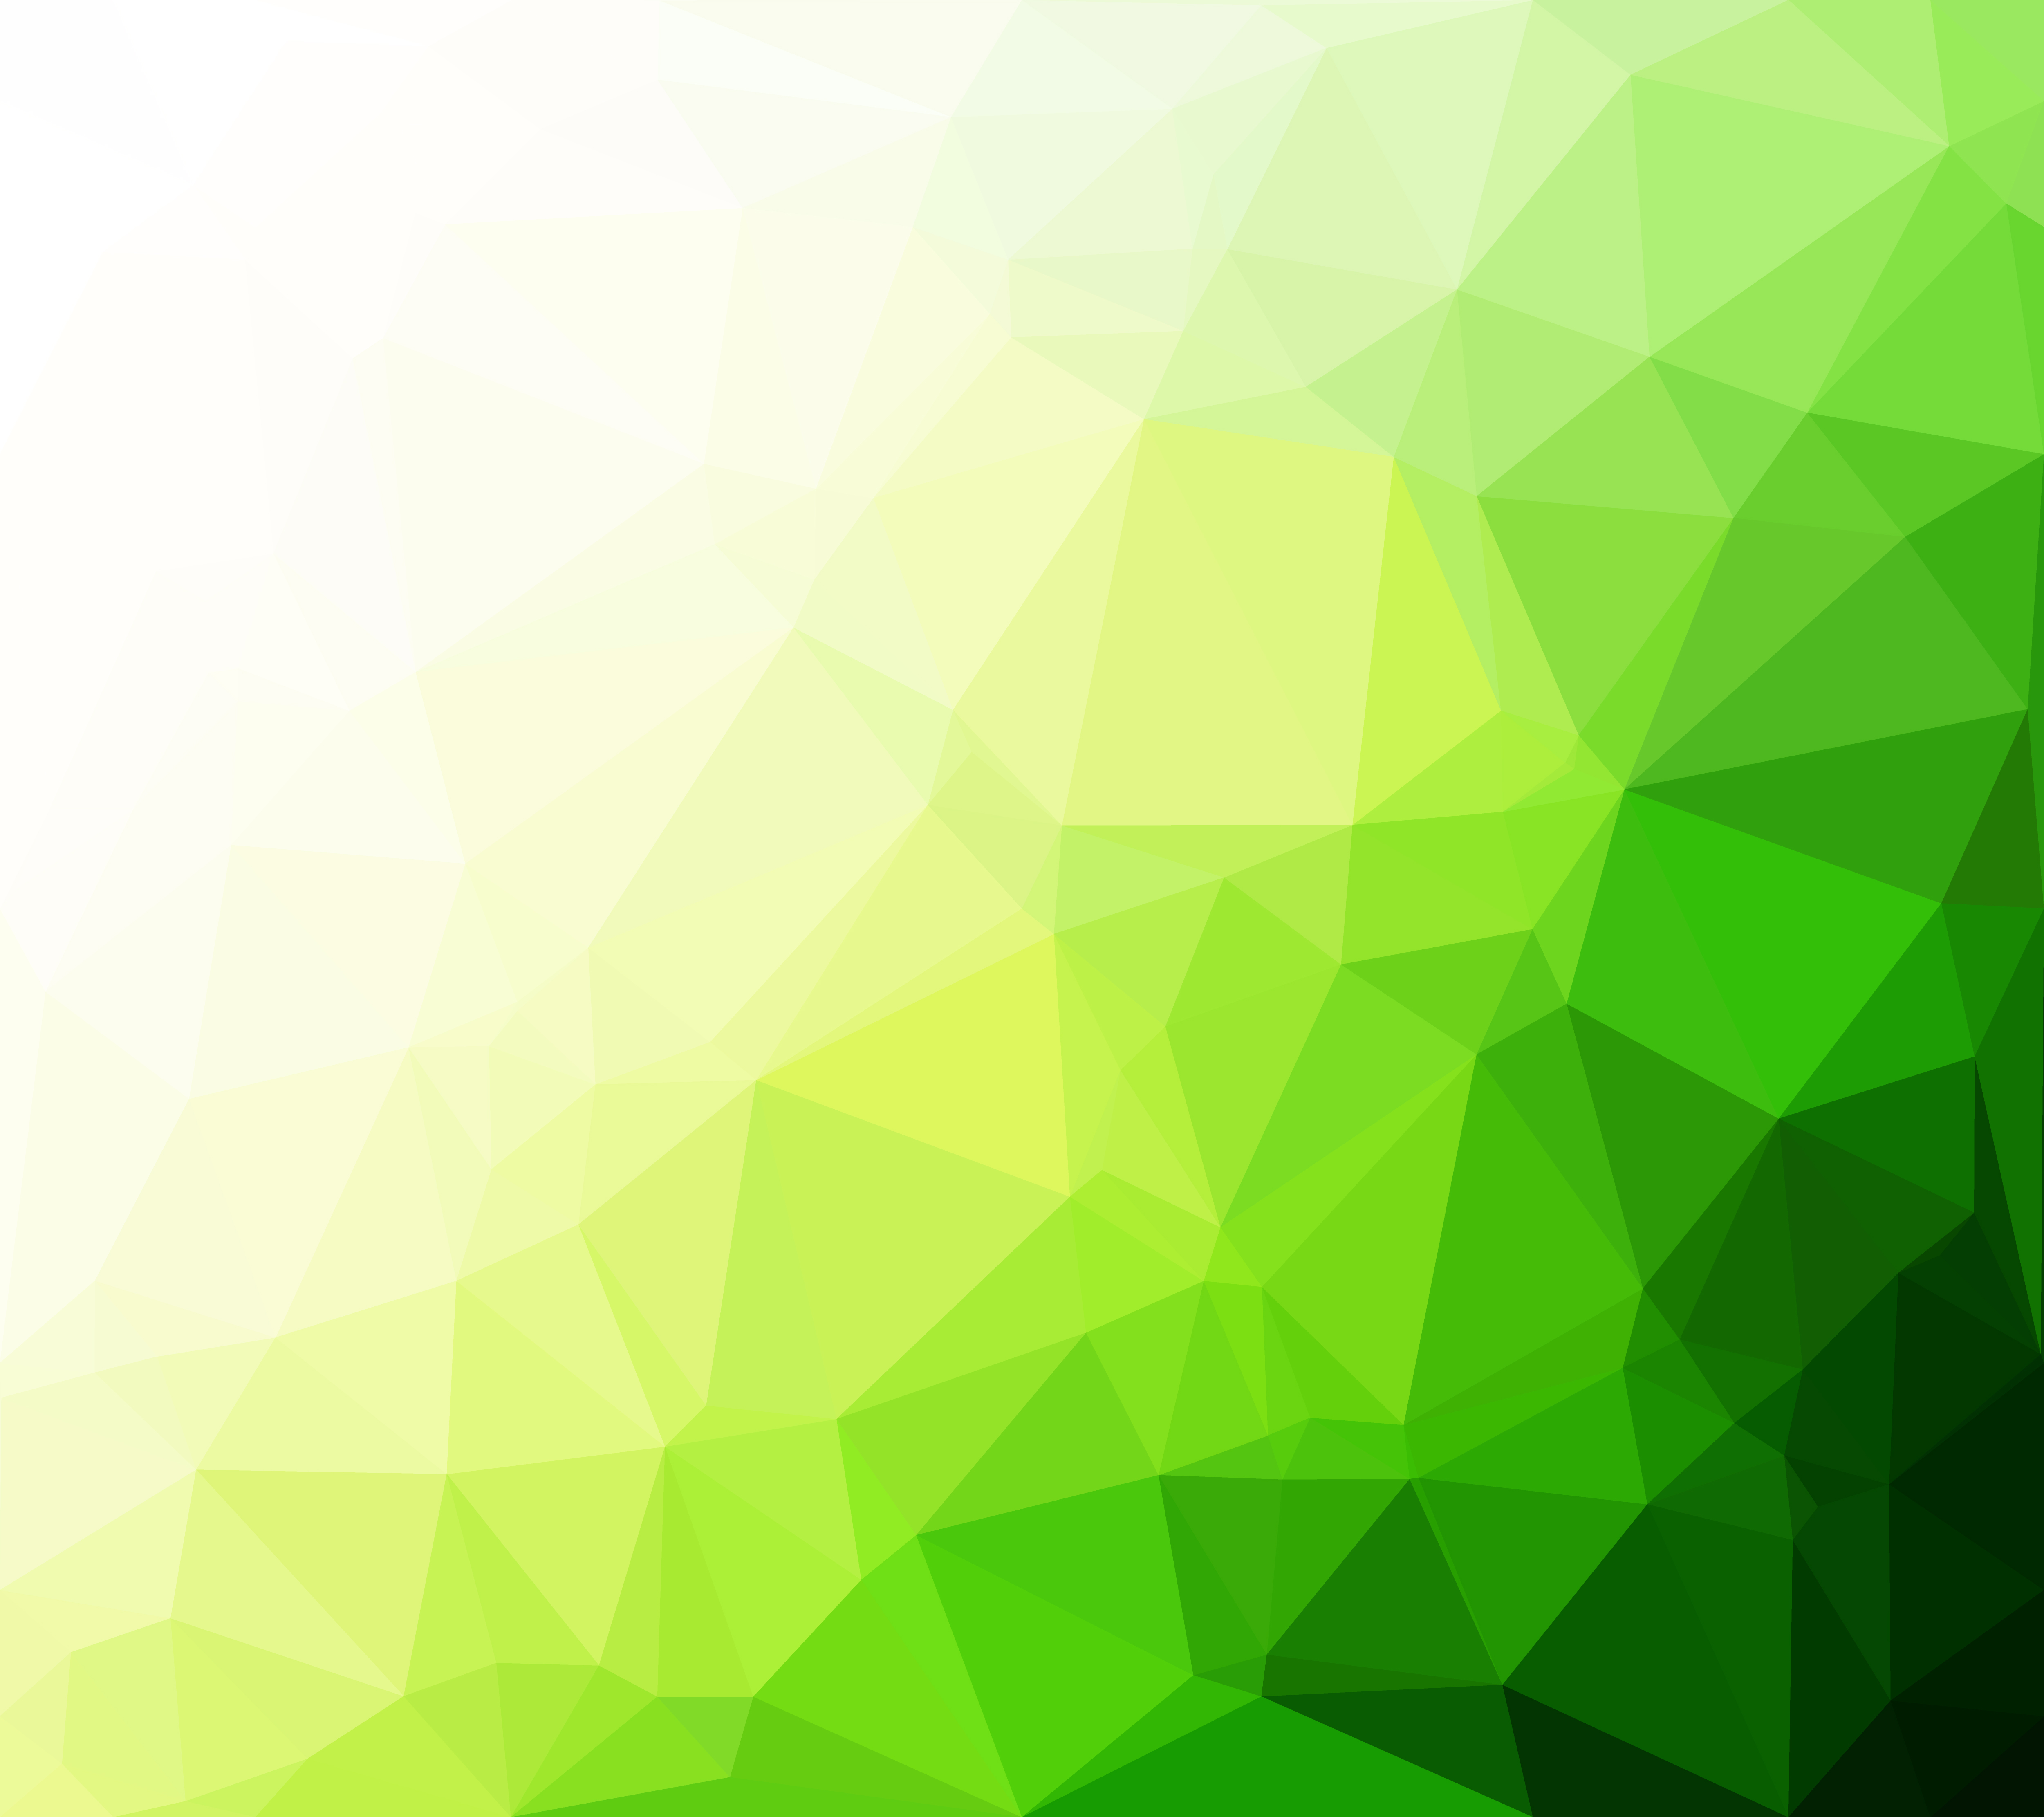 Colorful Template Design For Business Card: Green Polygonal Mosaic Background, Creative Design